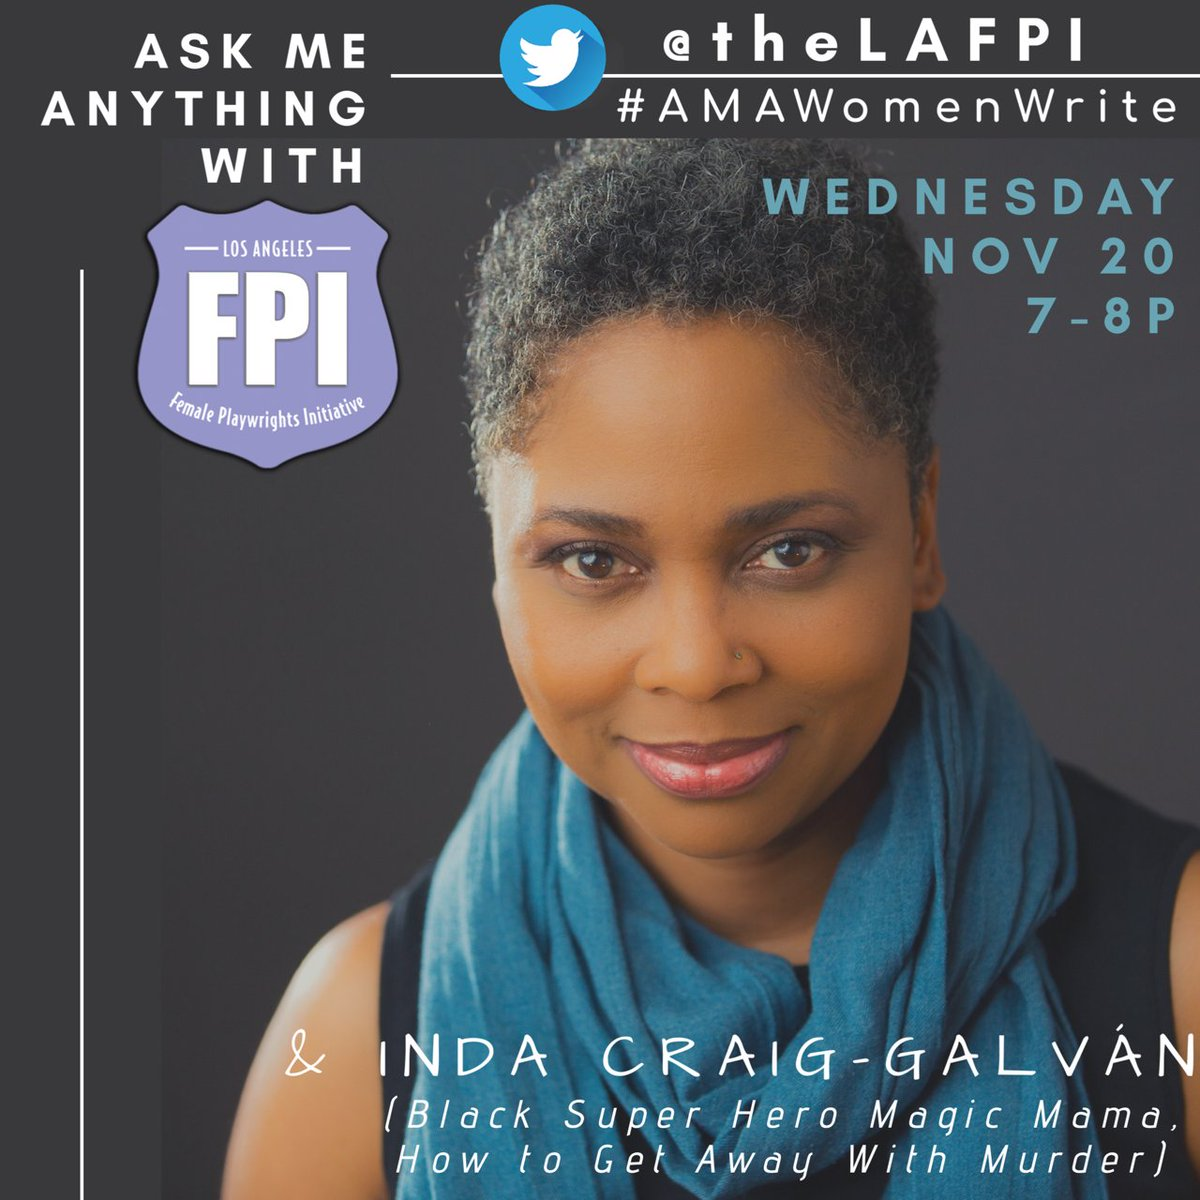 ⚡️ Don't miss our first Ask Me Anything #AMAWomenWrite on Wednesday, Nov. 20 from 7:00 PM to 8:00 PM PST! ⚡️ This AMA will feature award-winning playwright @IndaCraigGalvan -- hop into the chat at 7 PM PST to ask Inda Qs about her writing process, inspiration, and more.